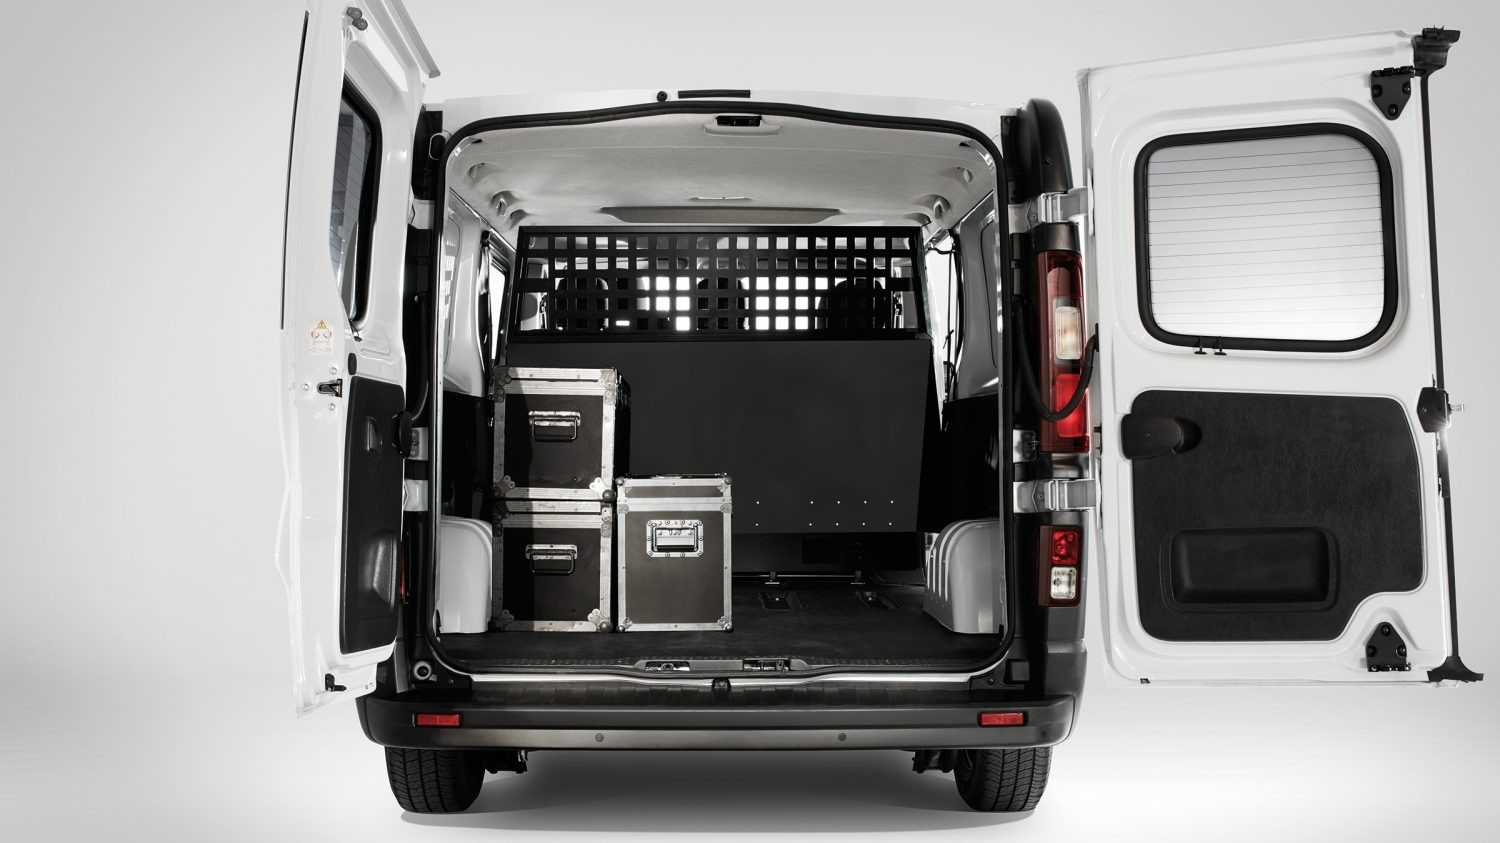 NV300 FULL REAR OPEN DOORS